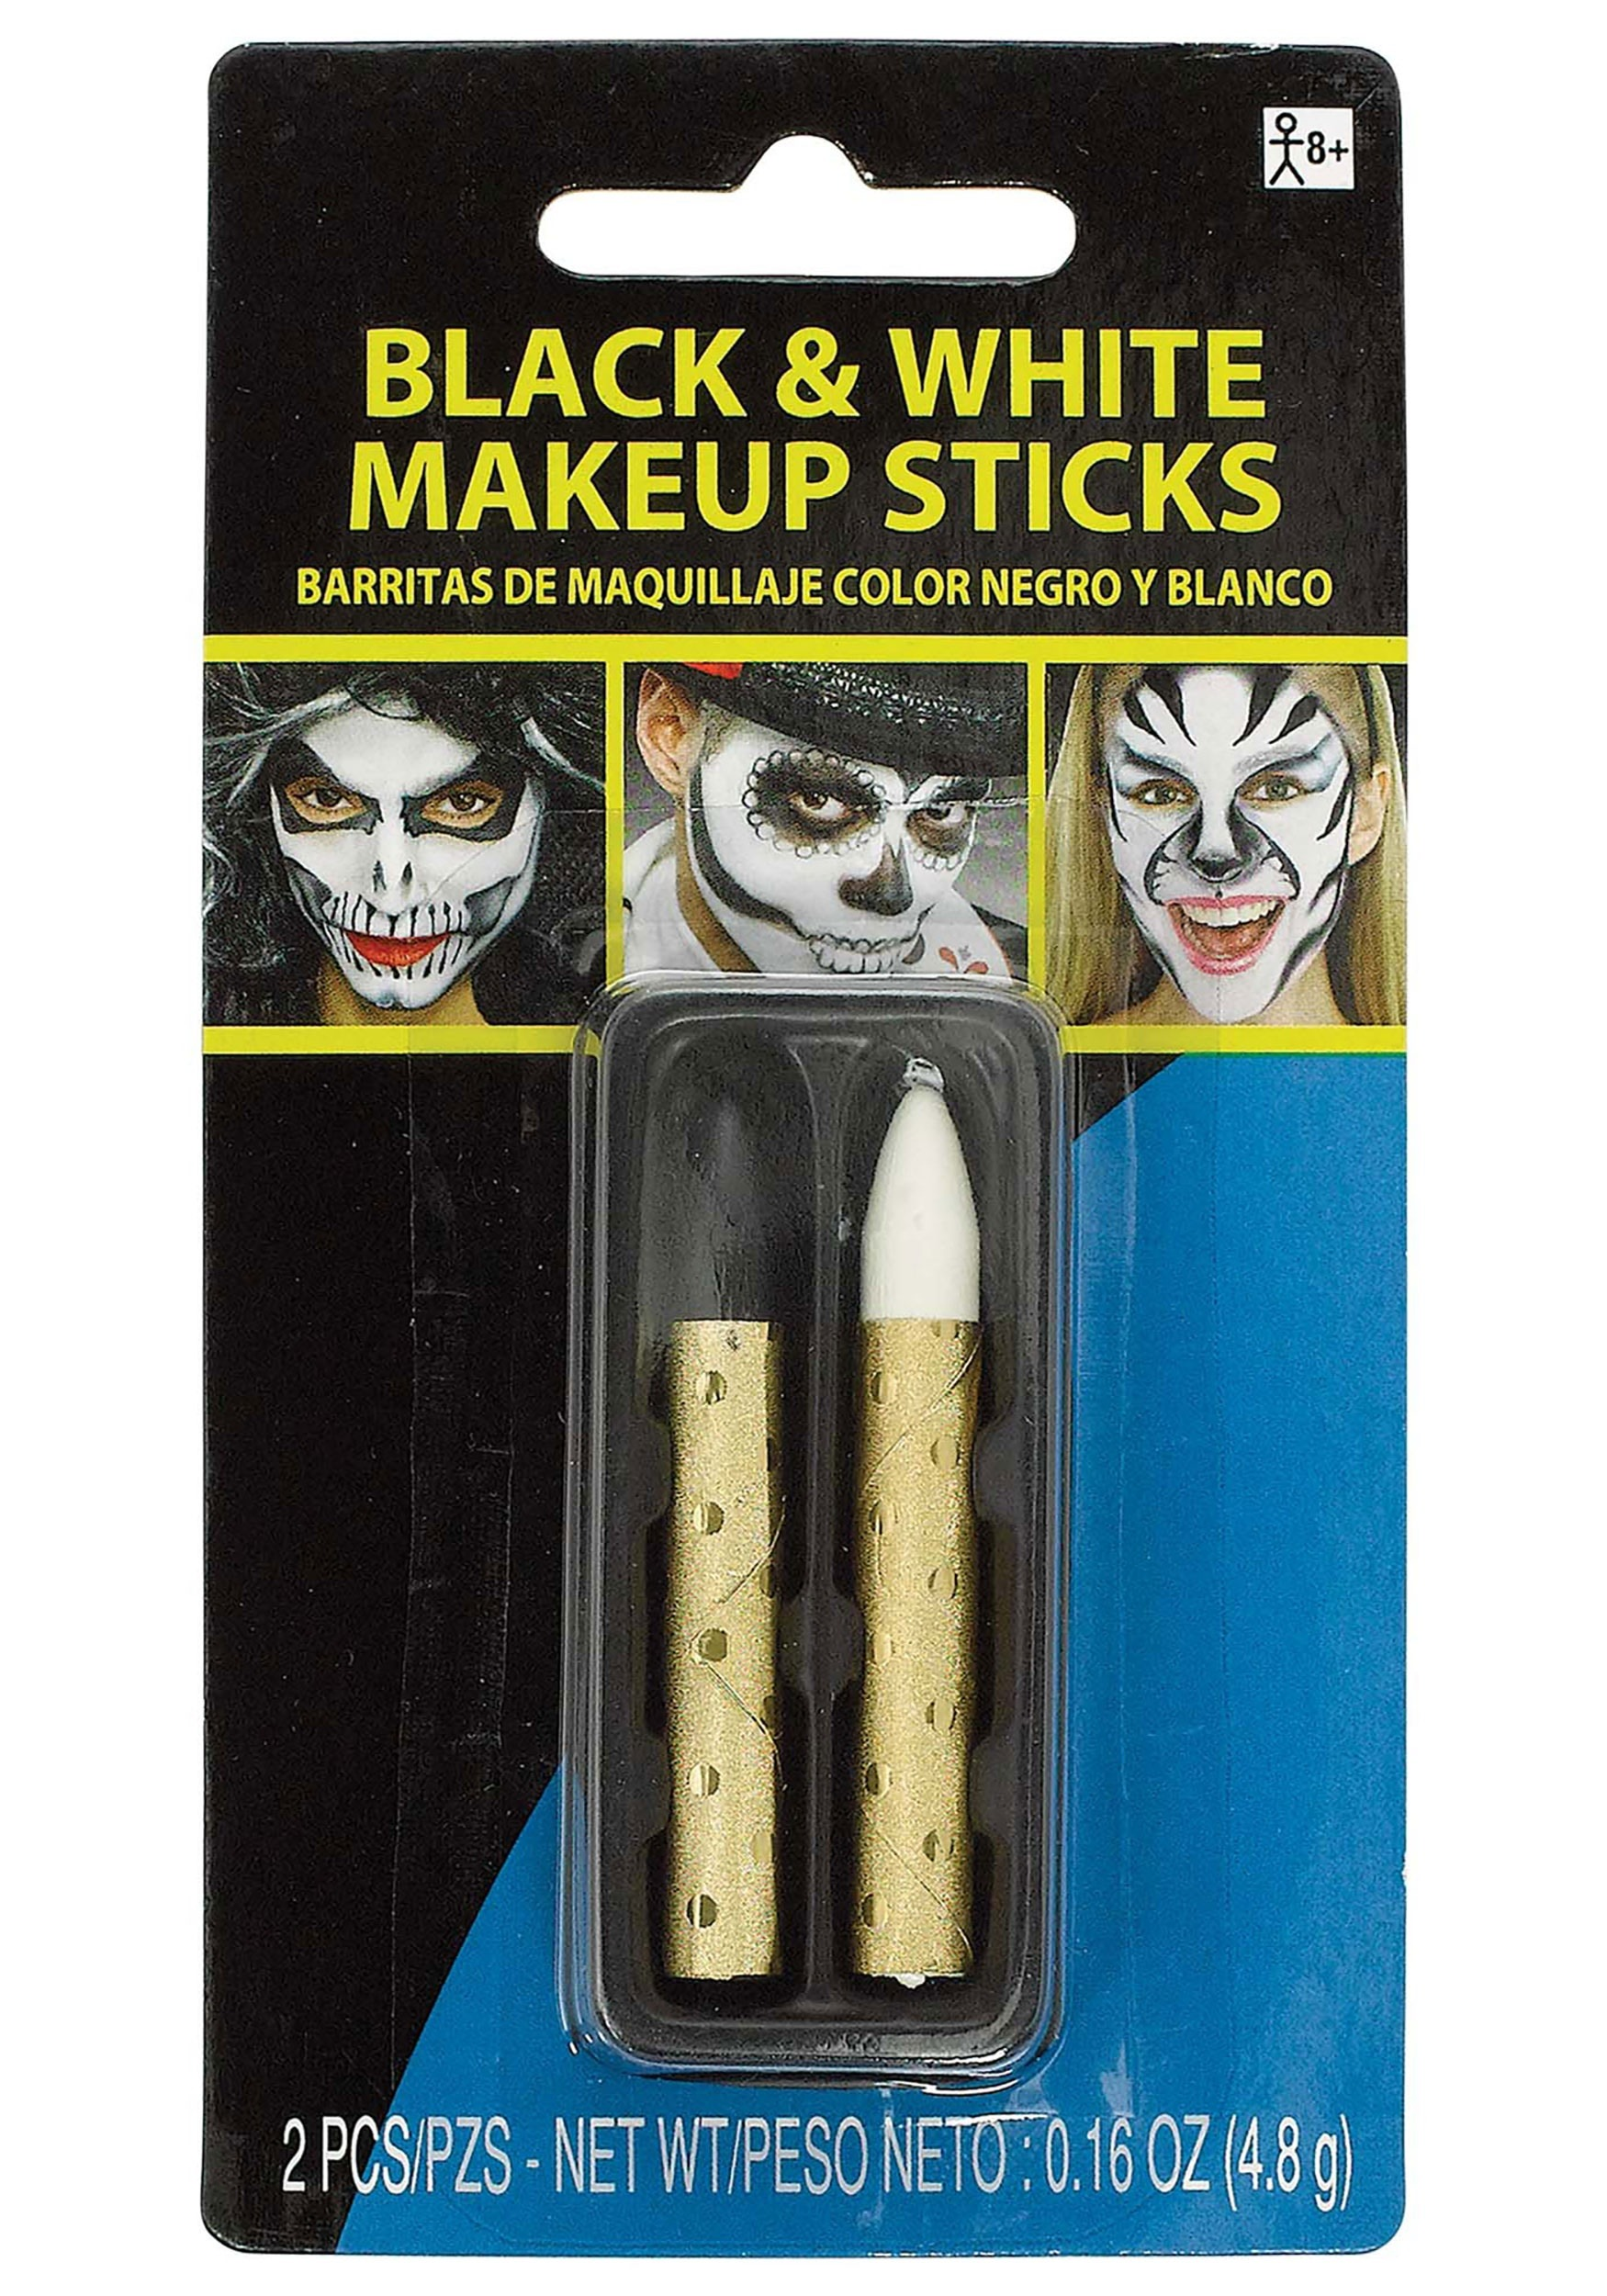 Makeup_Sticks_Black_and_White